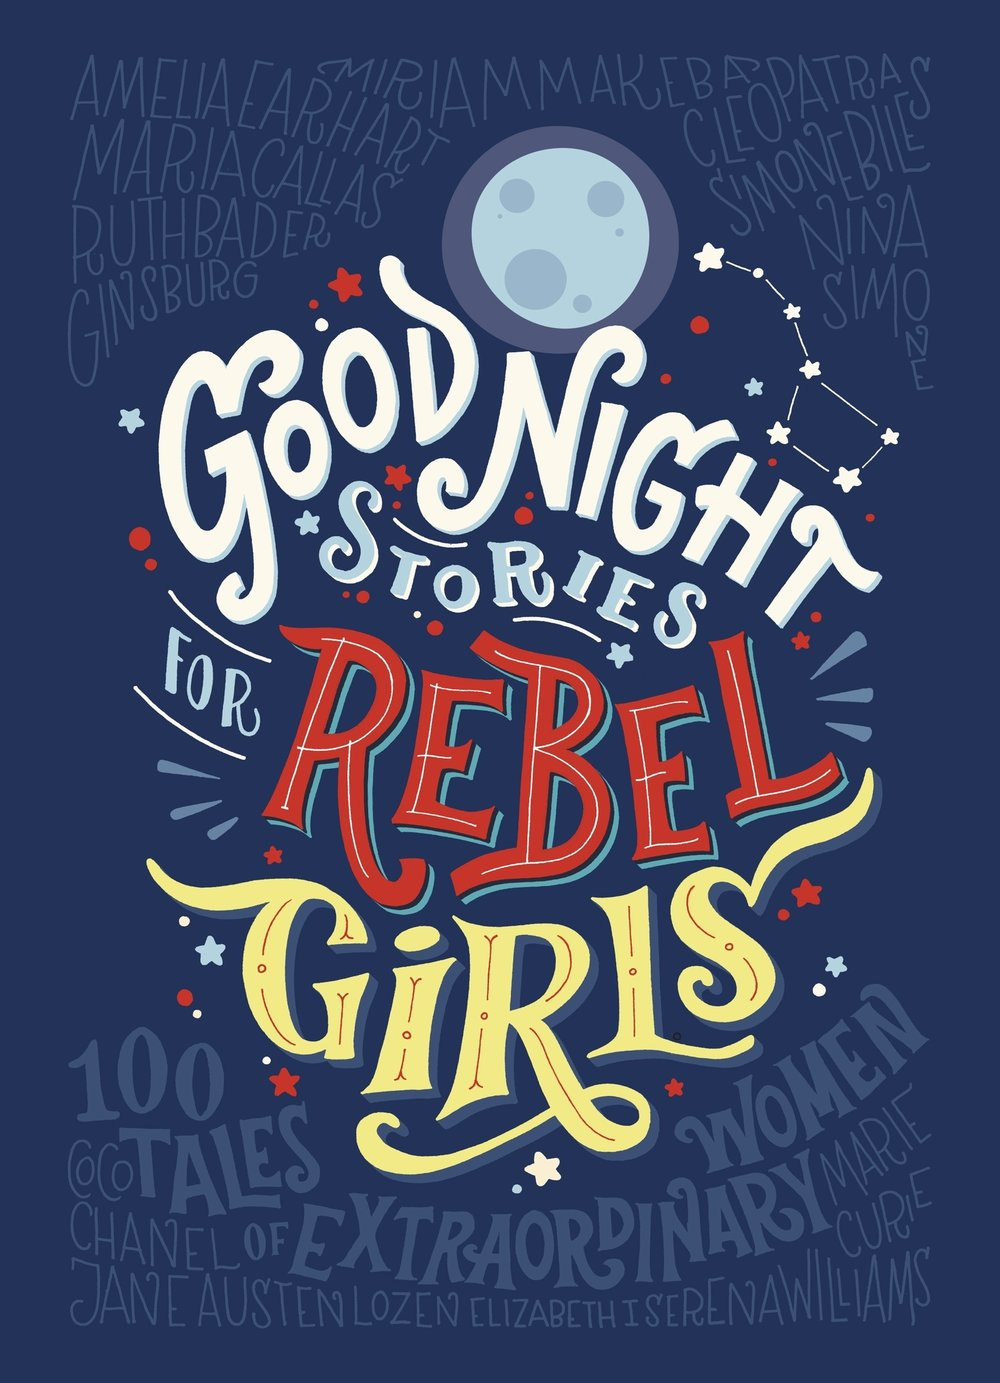 goodnight stories for rebel girls.jpg